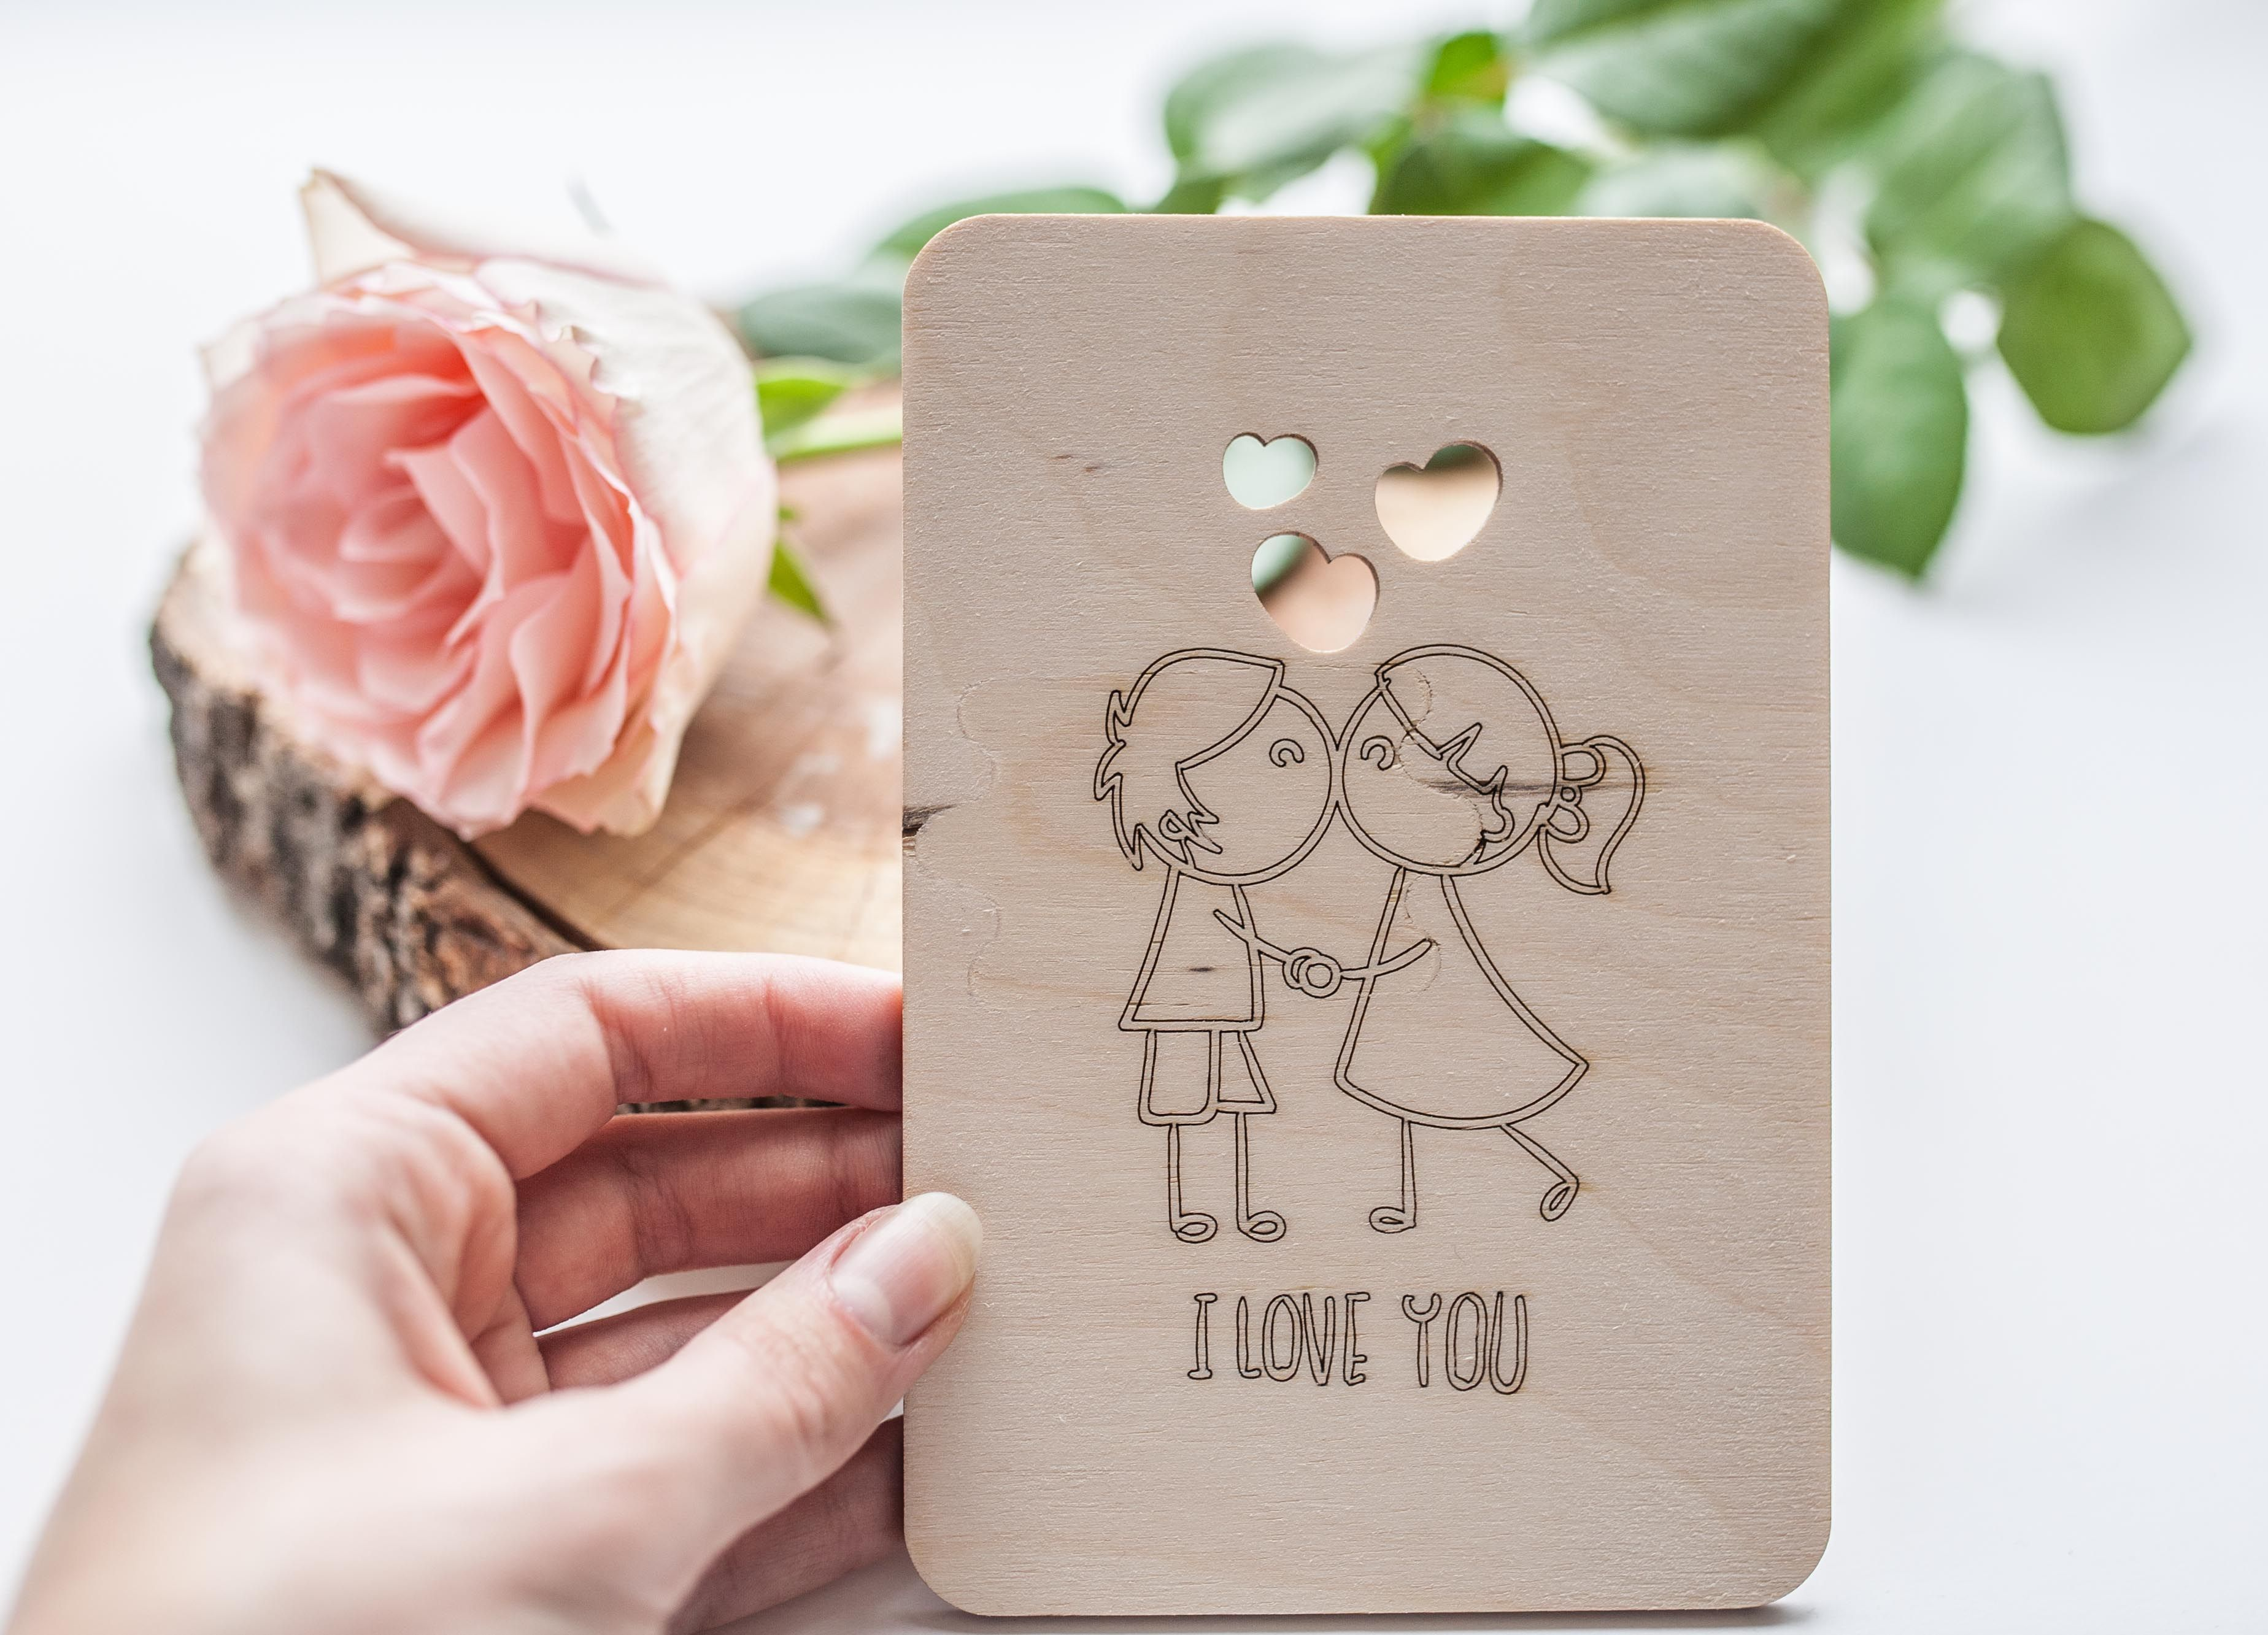 St valentines card wood anniversary card valentine card laser valentine card laser cut etched on wood card wood card st valentines anniversary card love cards kristyandbryce Choice Image